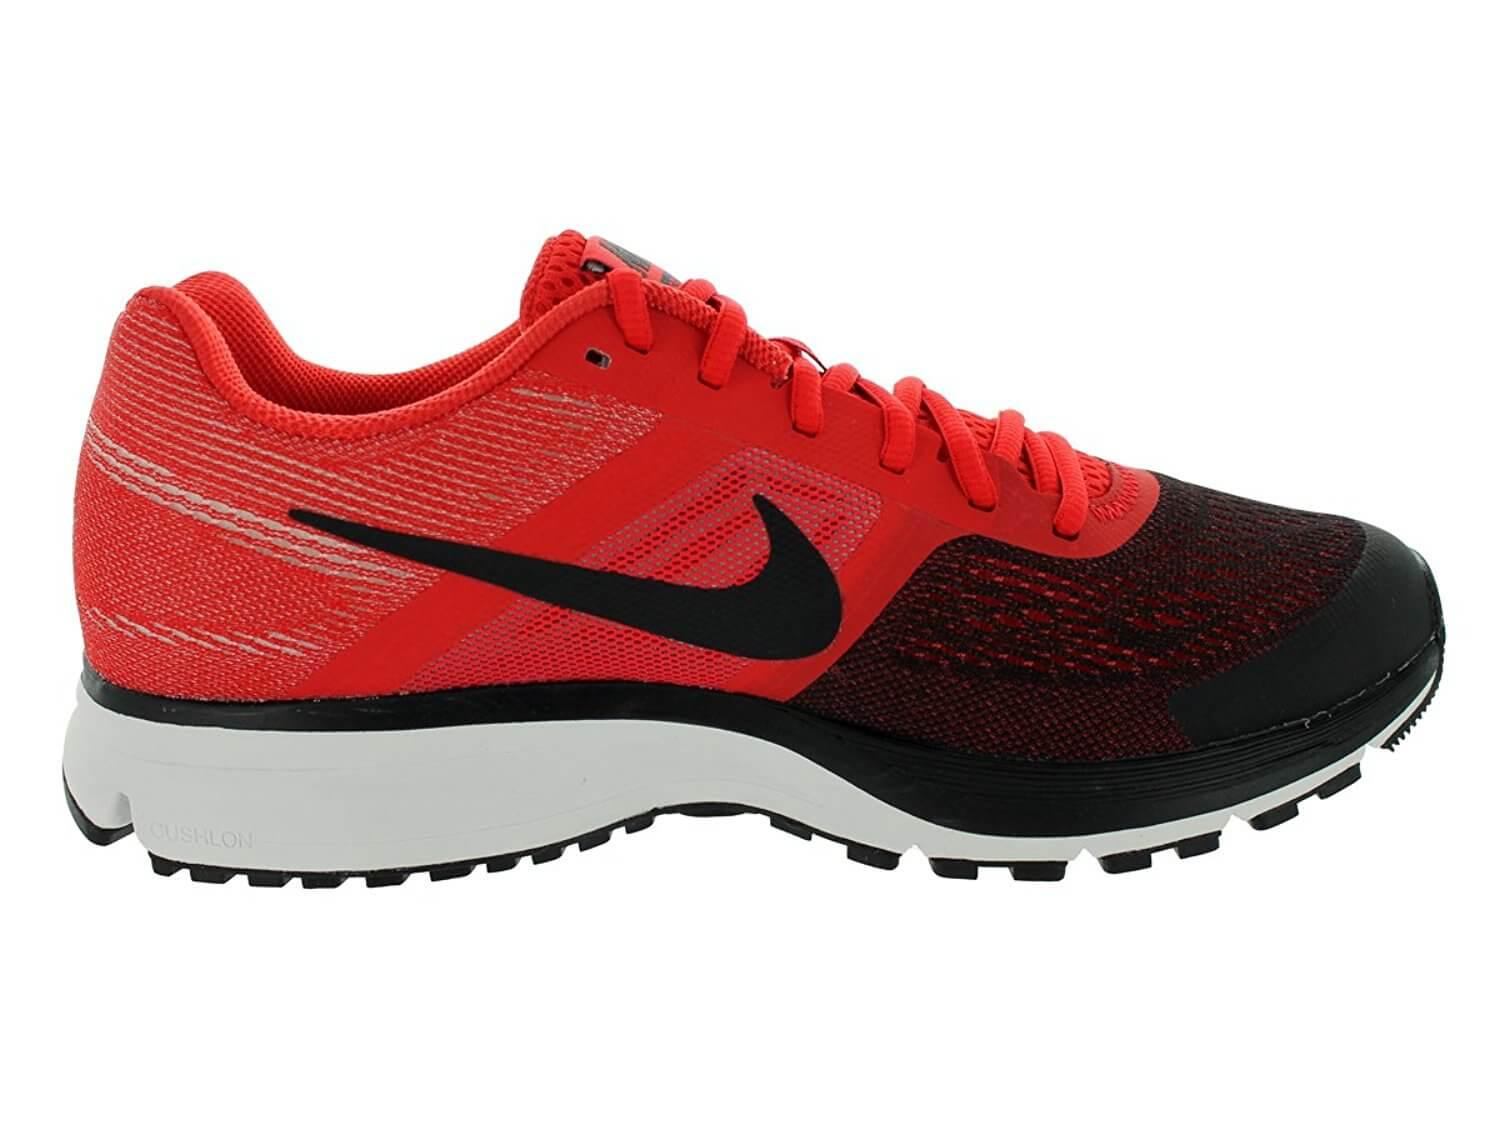 timeless design c819b 60b2d Nike Air Pegasus 30